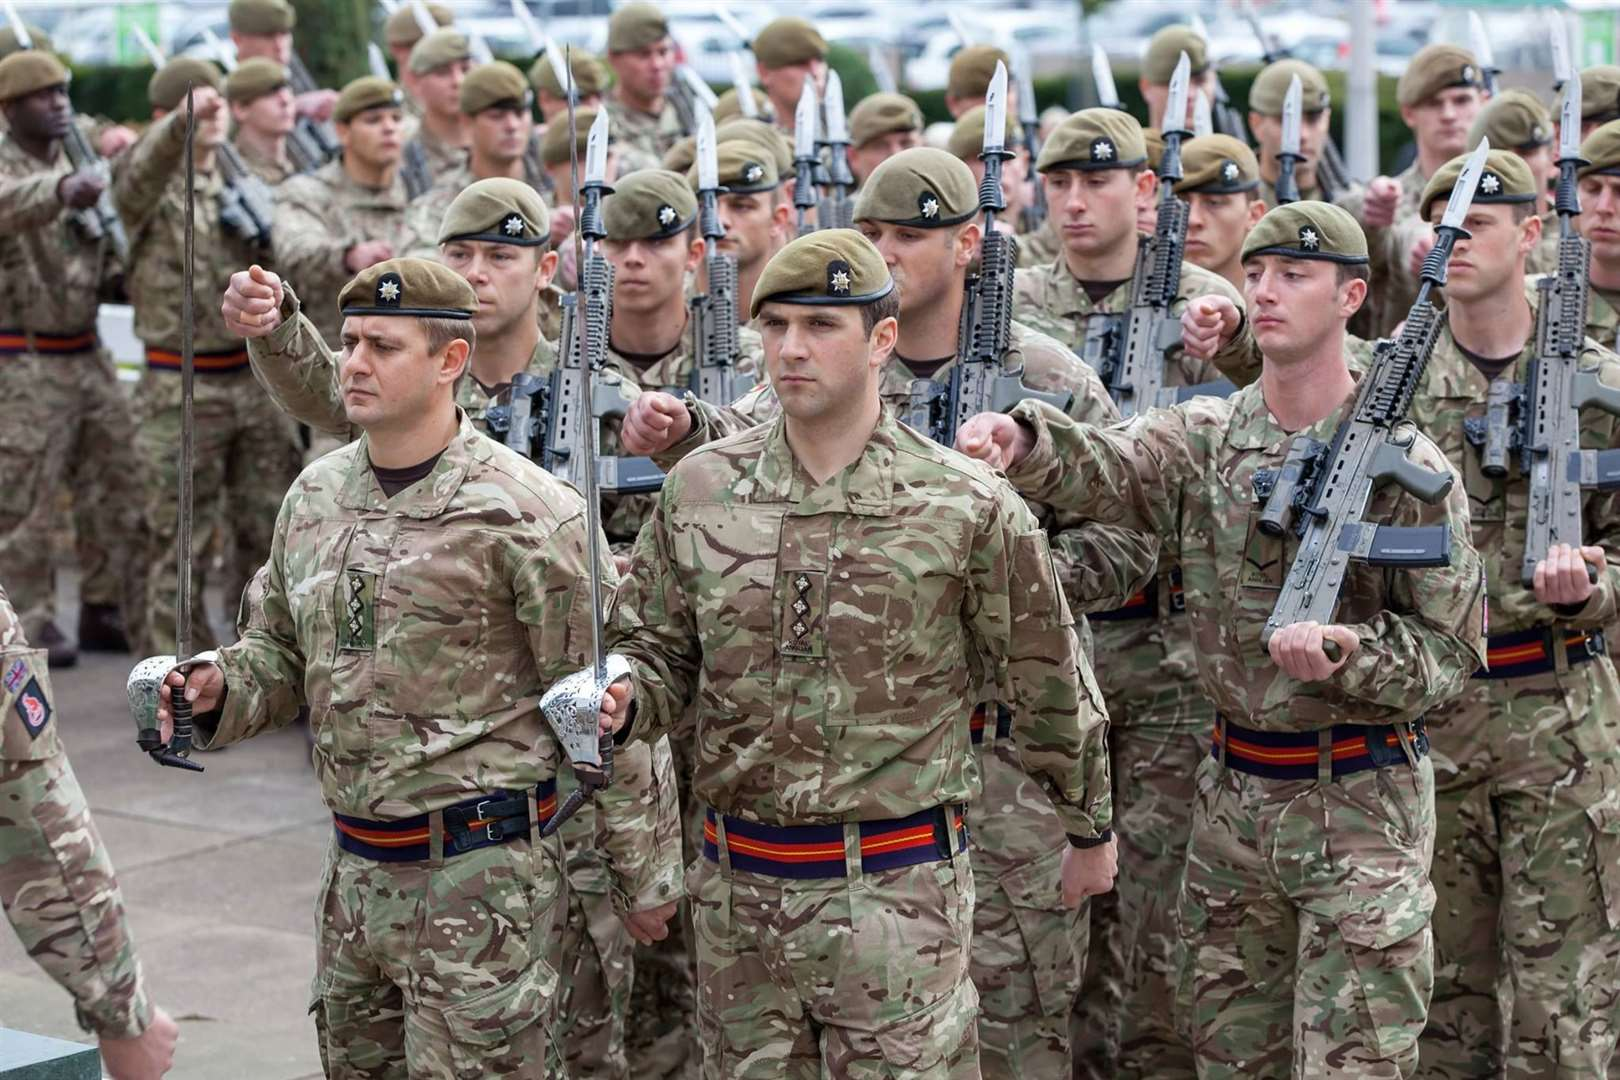 The Royal Anglian Regiment on parade. Contributed photo